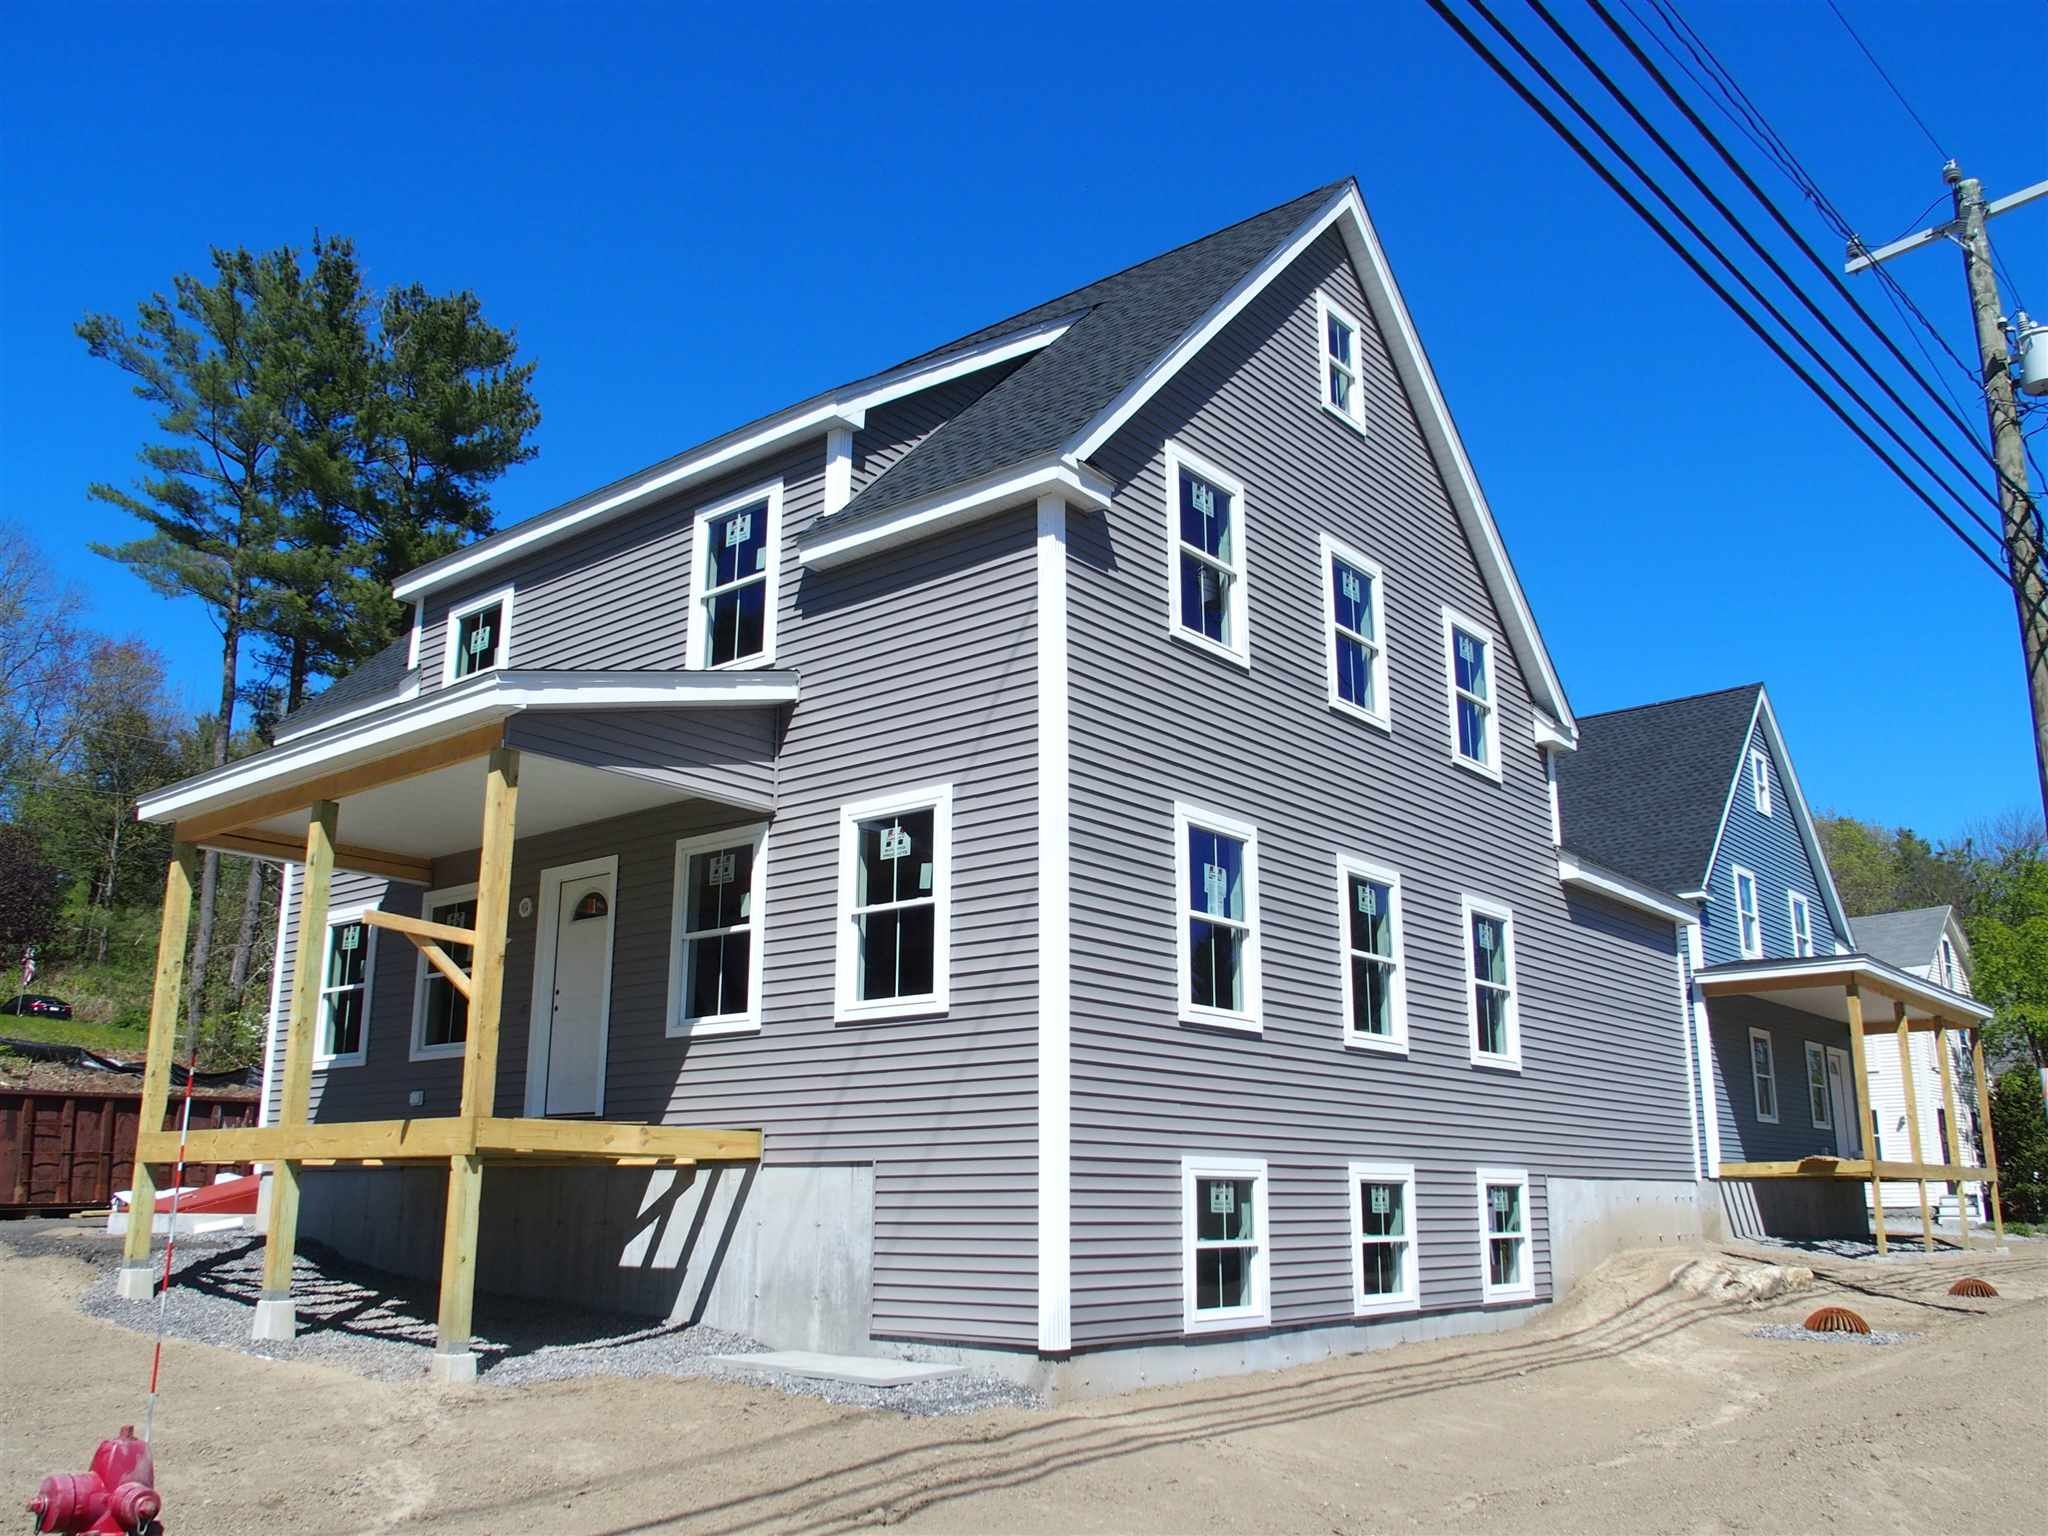 MLS 4796801: 26 Prospect Street, Peterborough NH